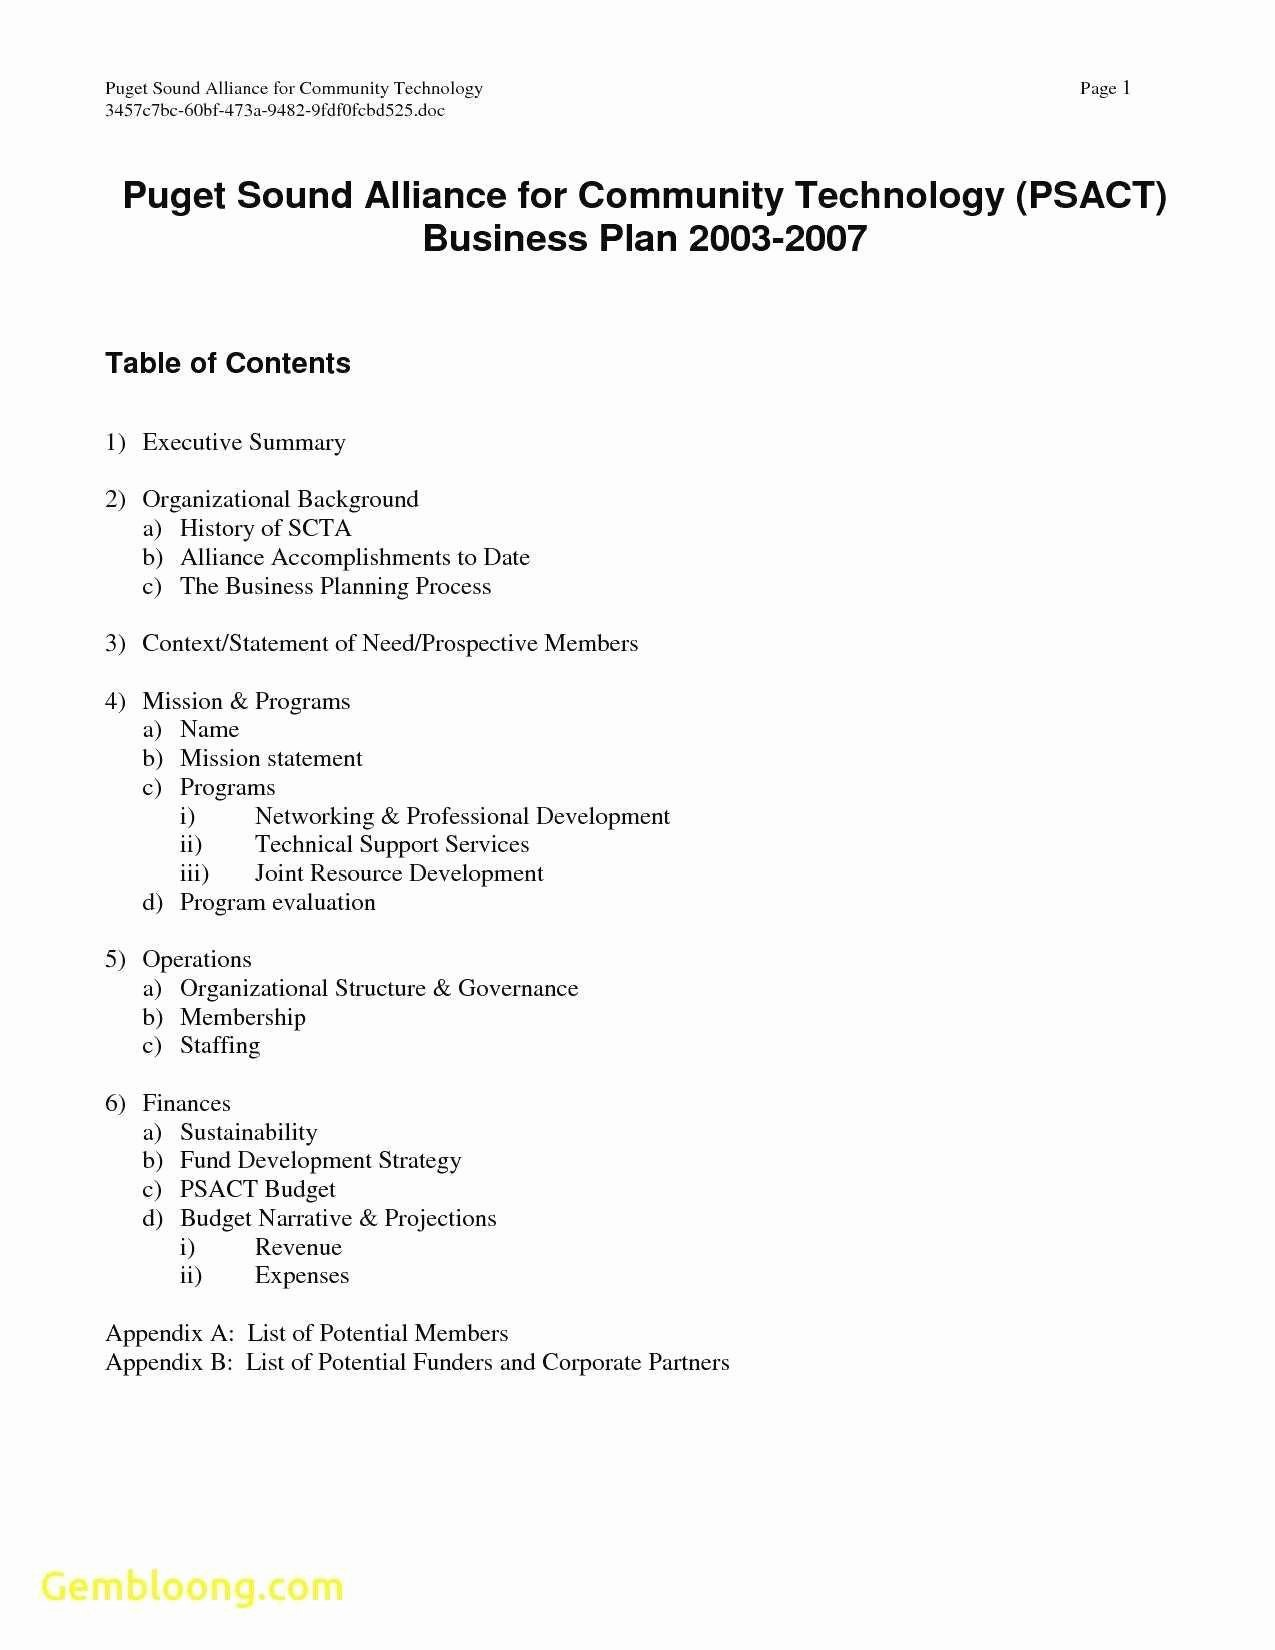 Nonprofit Strategic Plan Template Luxury Inspirational Strategic Plan Examples for Nonprofits